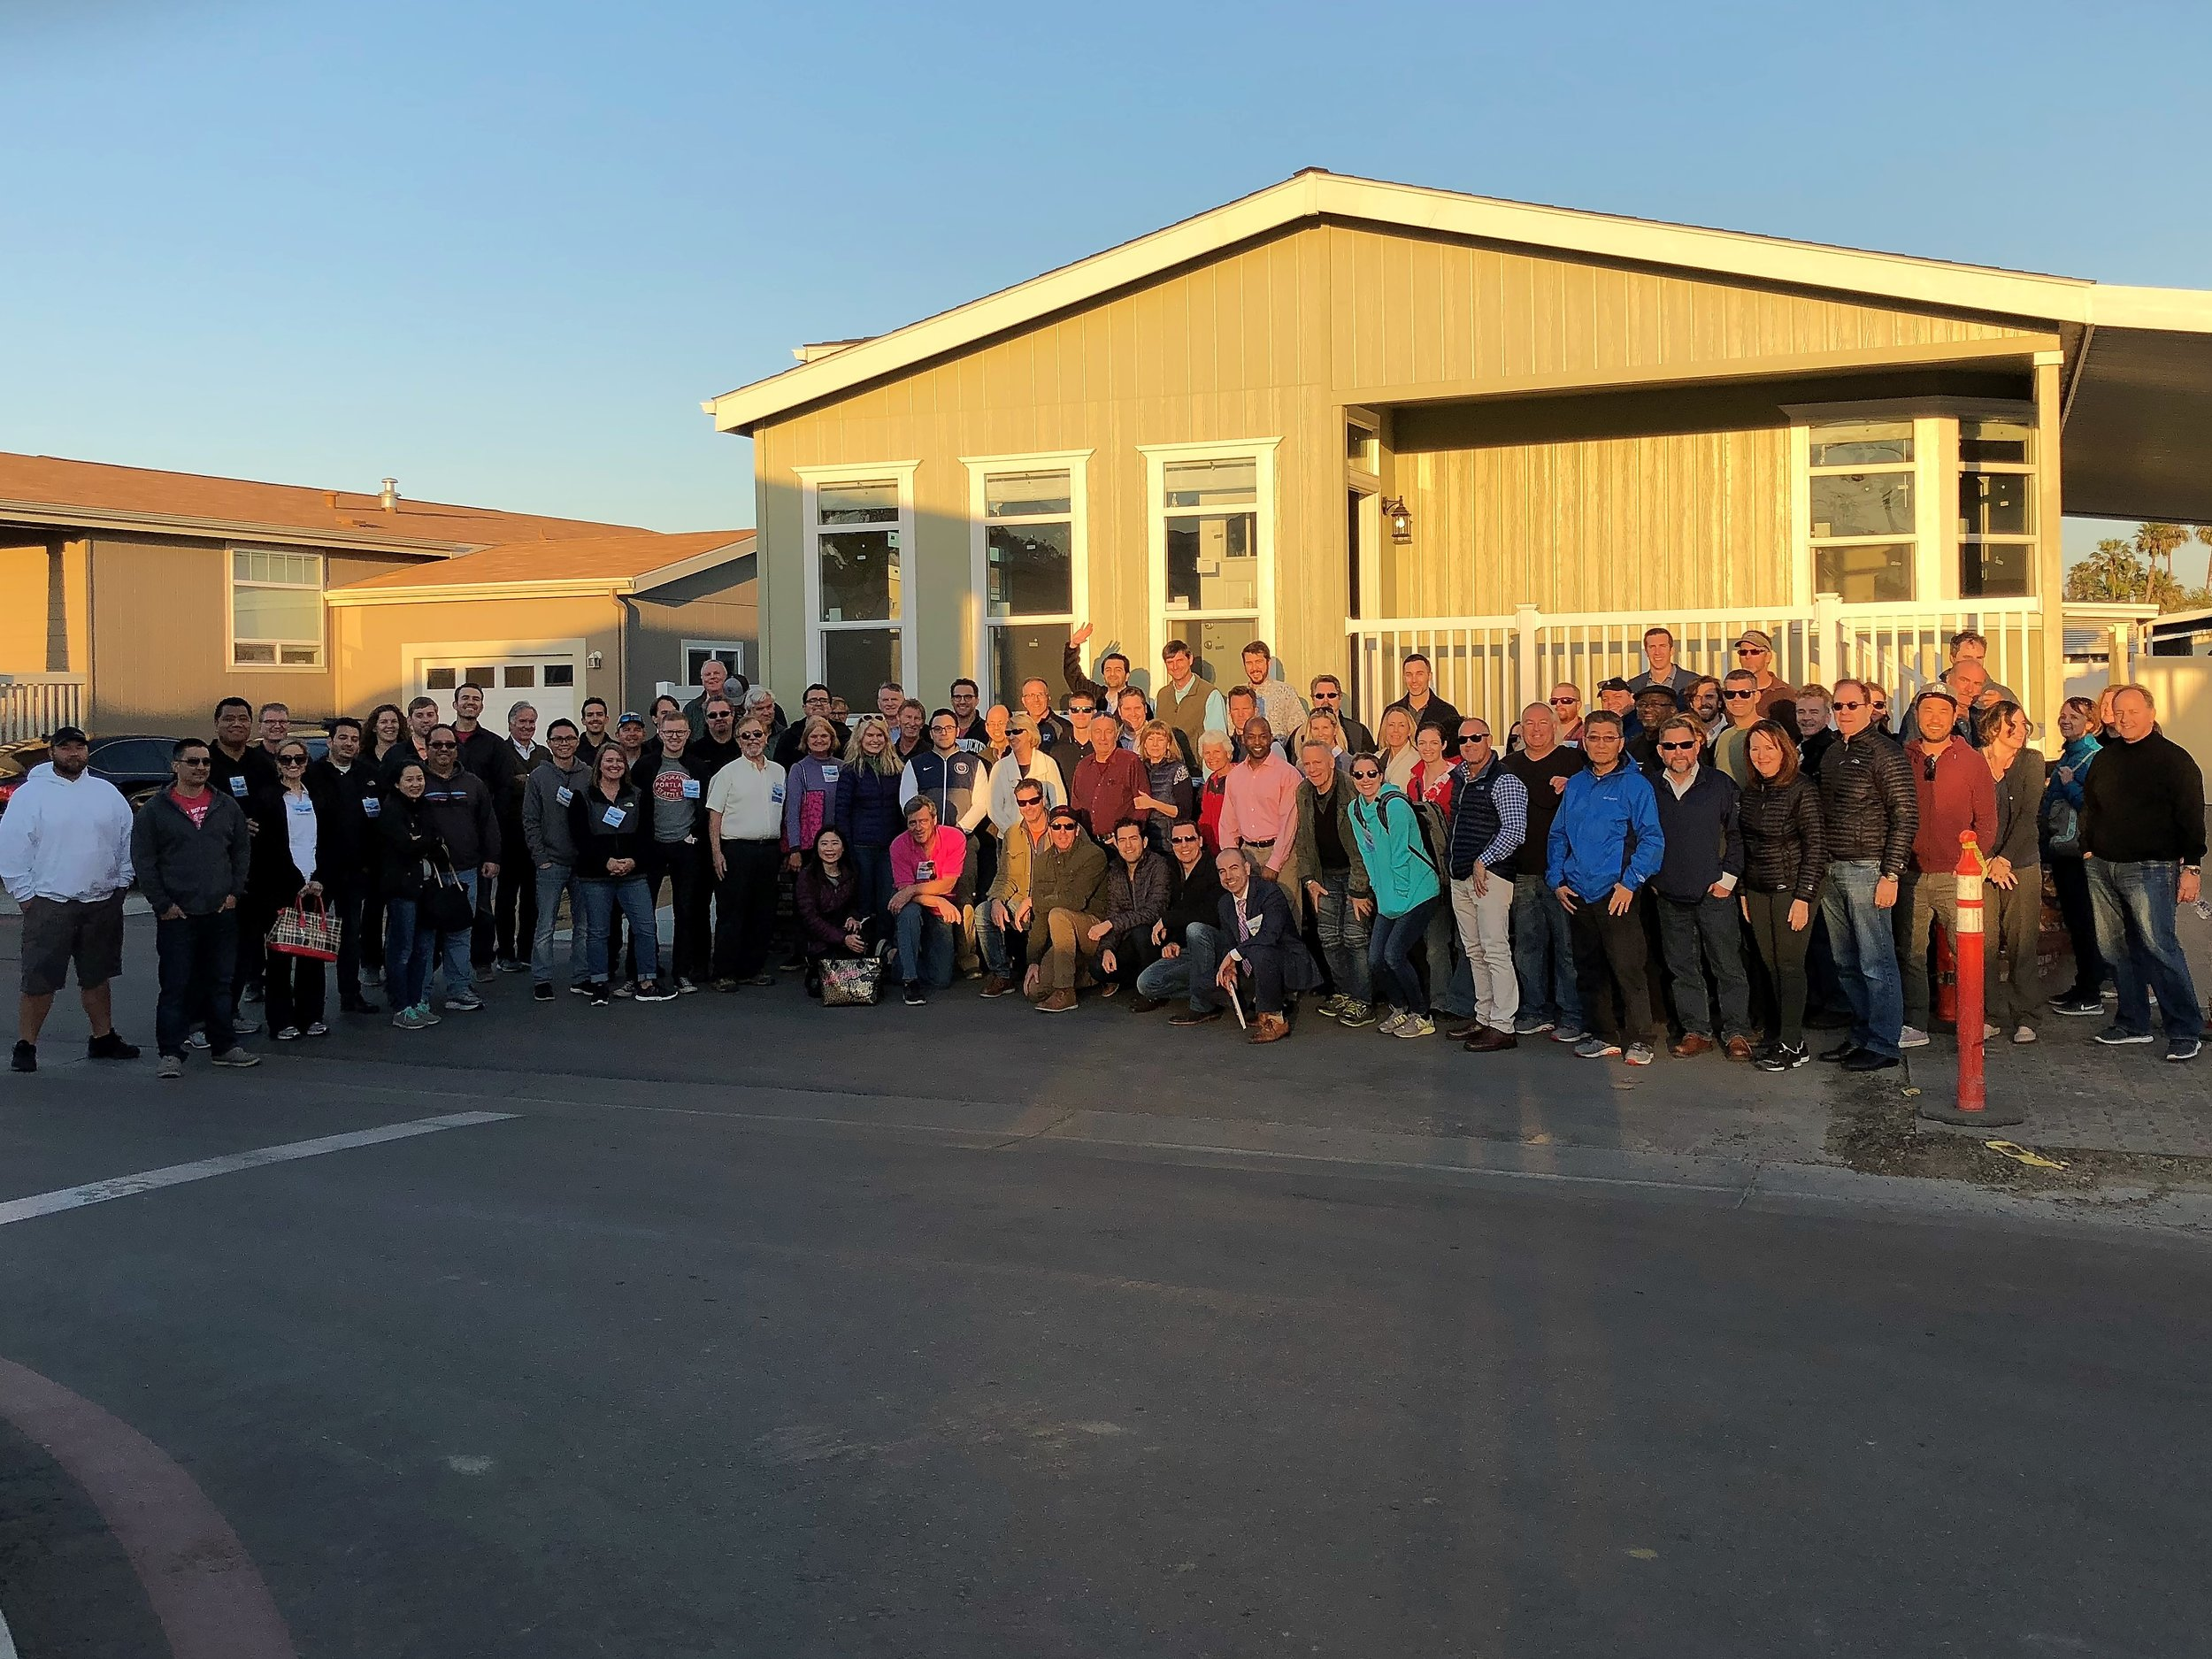 Class Photo! This was taken in front of a mobile home installation at a Huntington Beach Park.